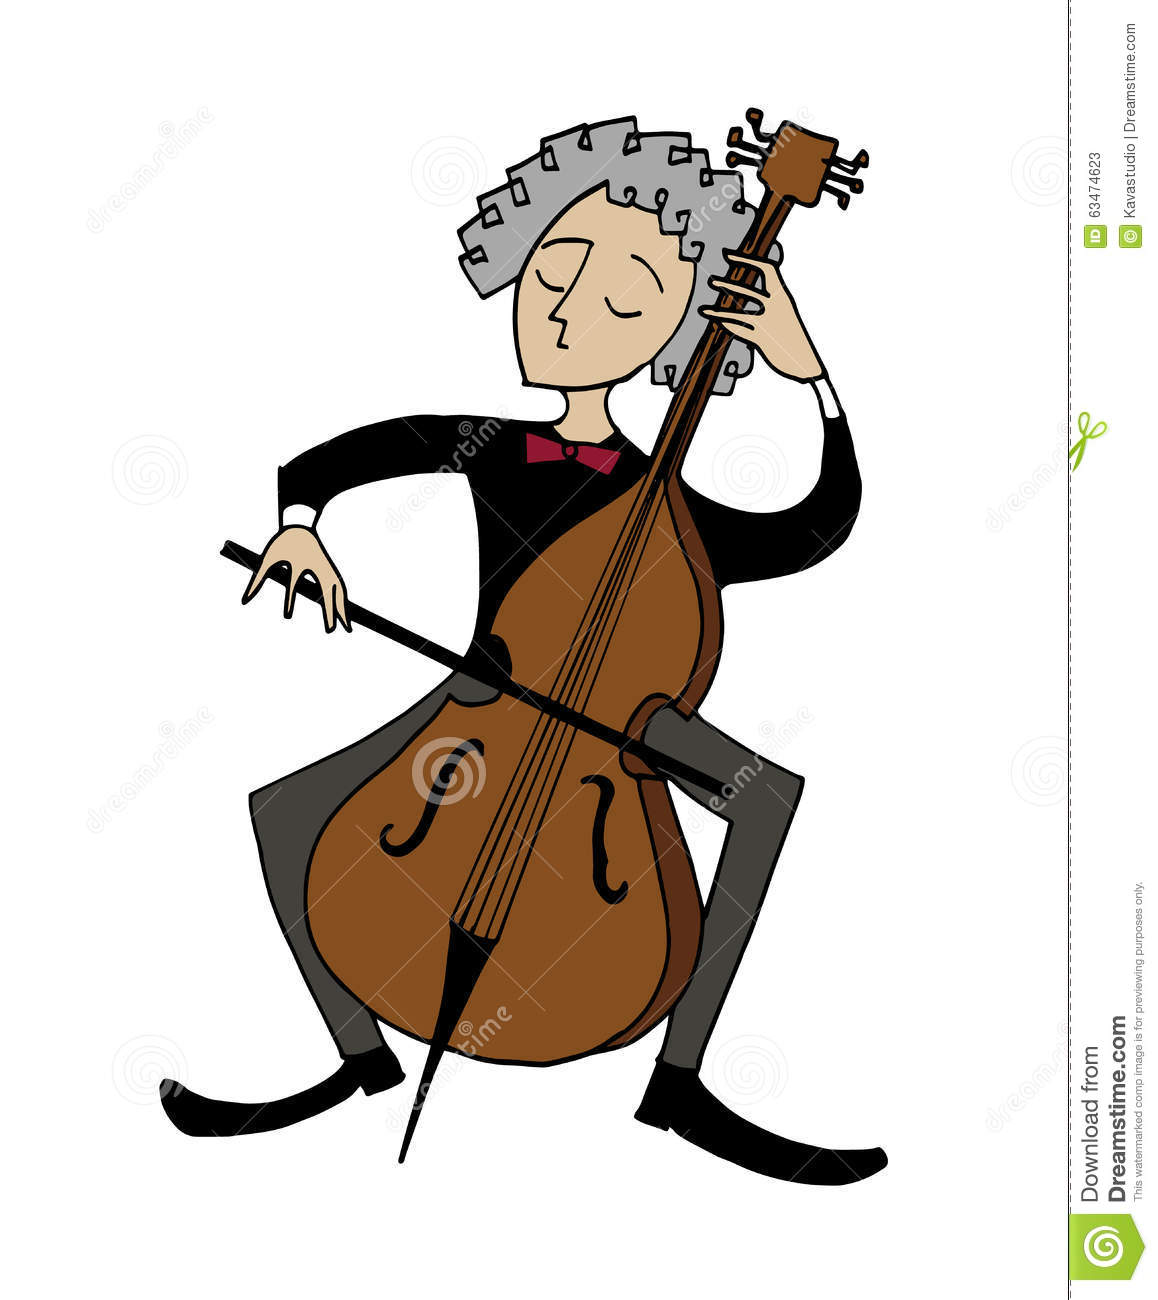 Cartoon cellist. Musician playing a cello. Clipart, hand-drawn simple ...